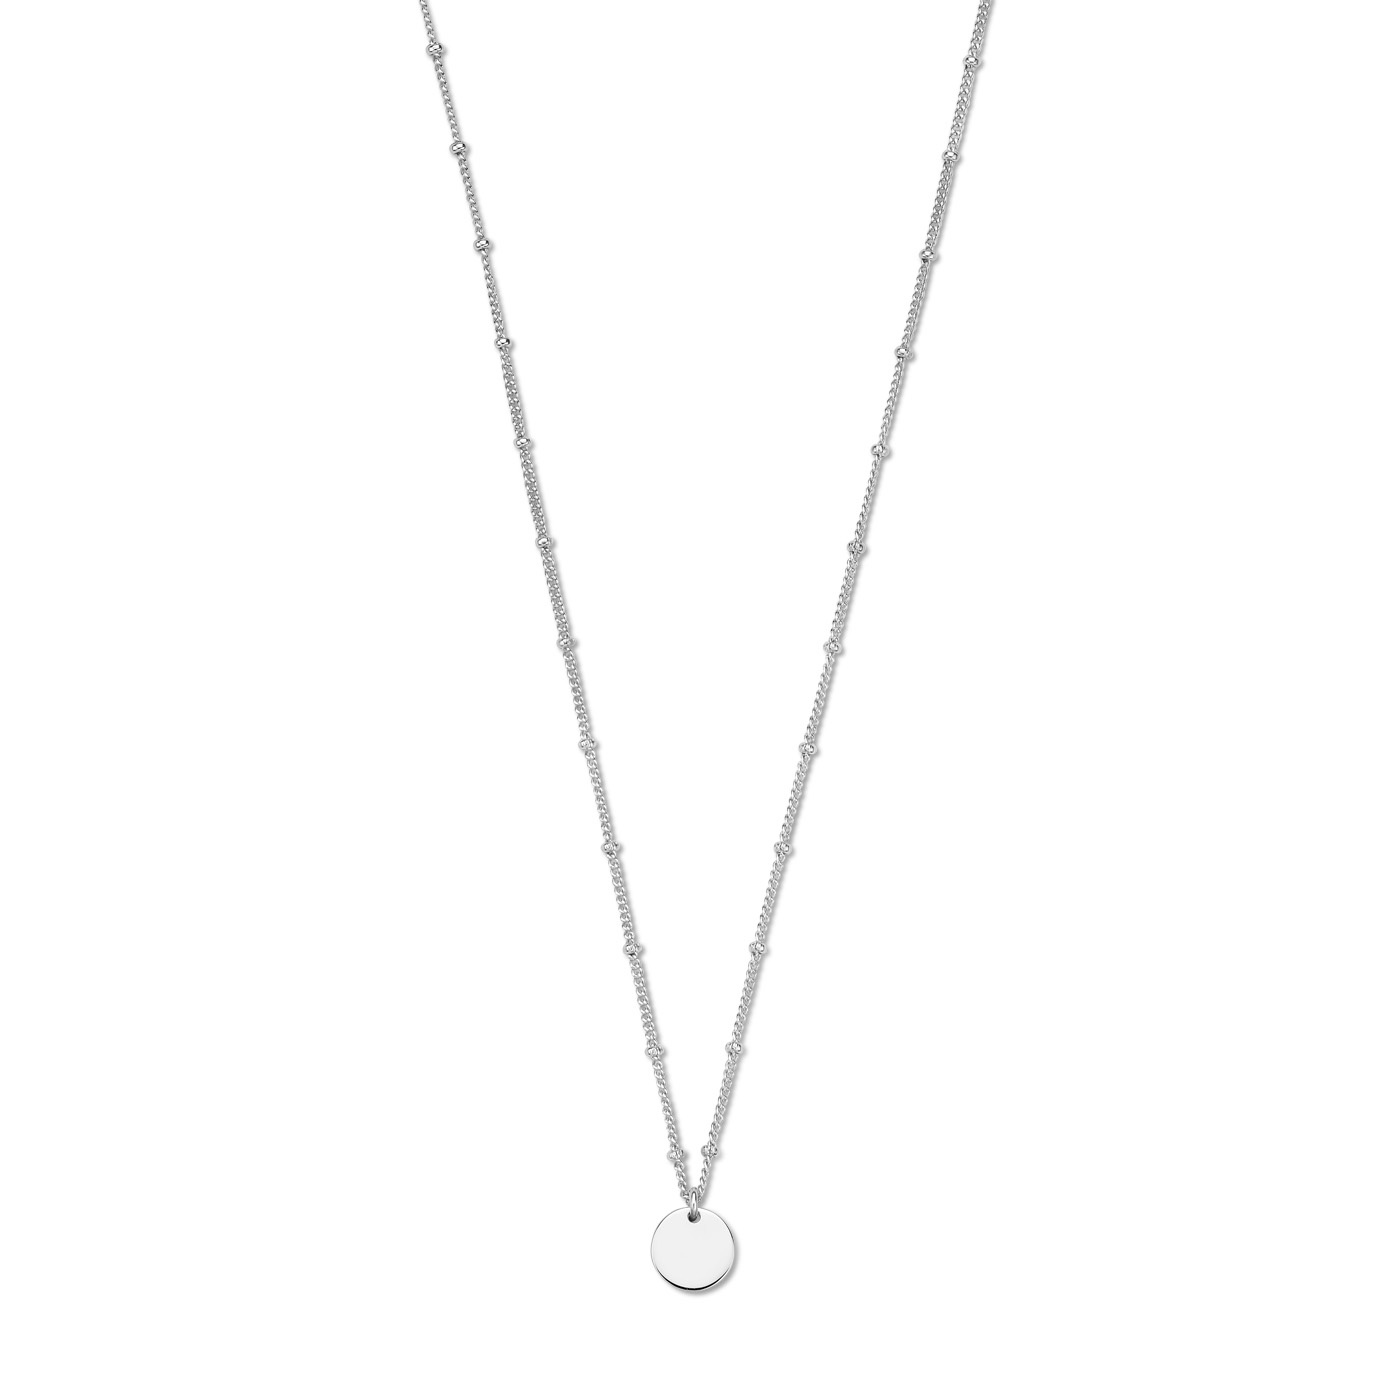 Selected Jewels Lizzy Maja 925 sterling silver necklace